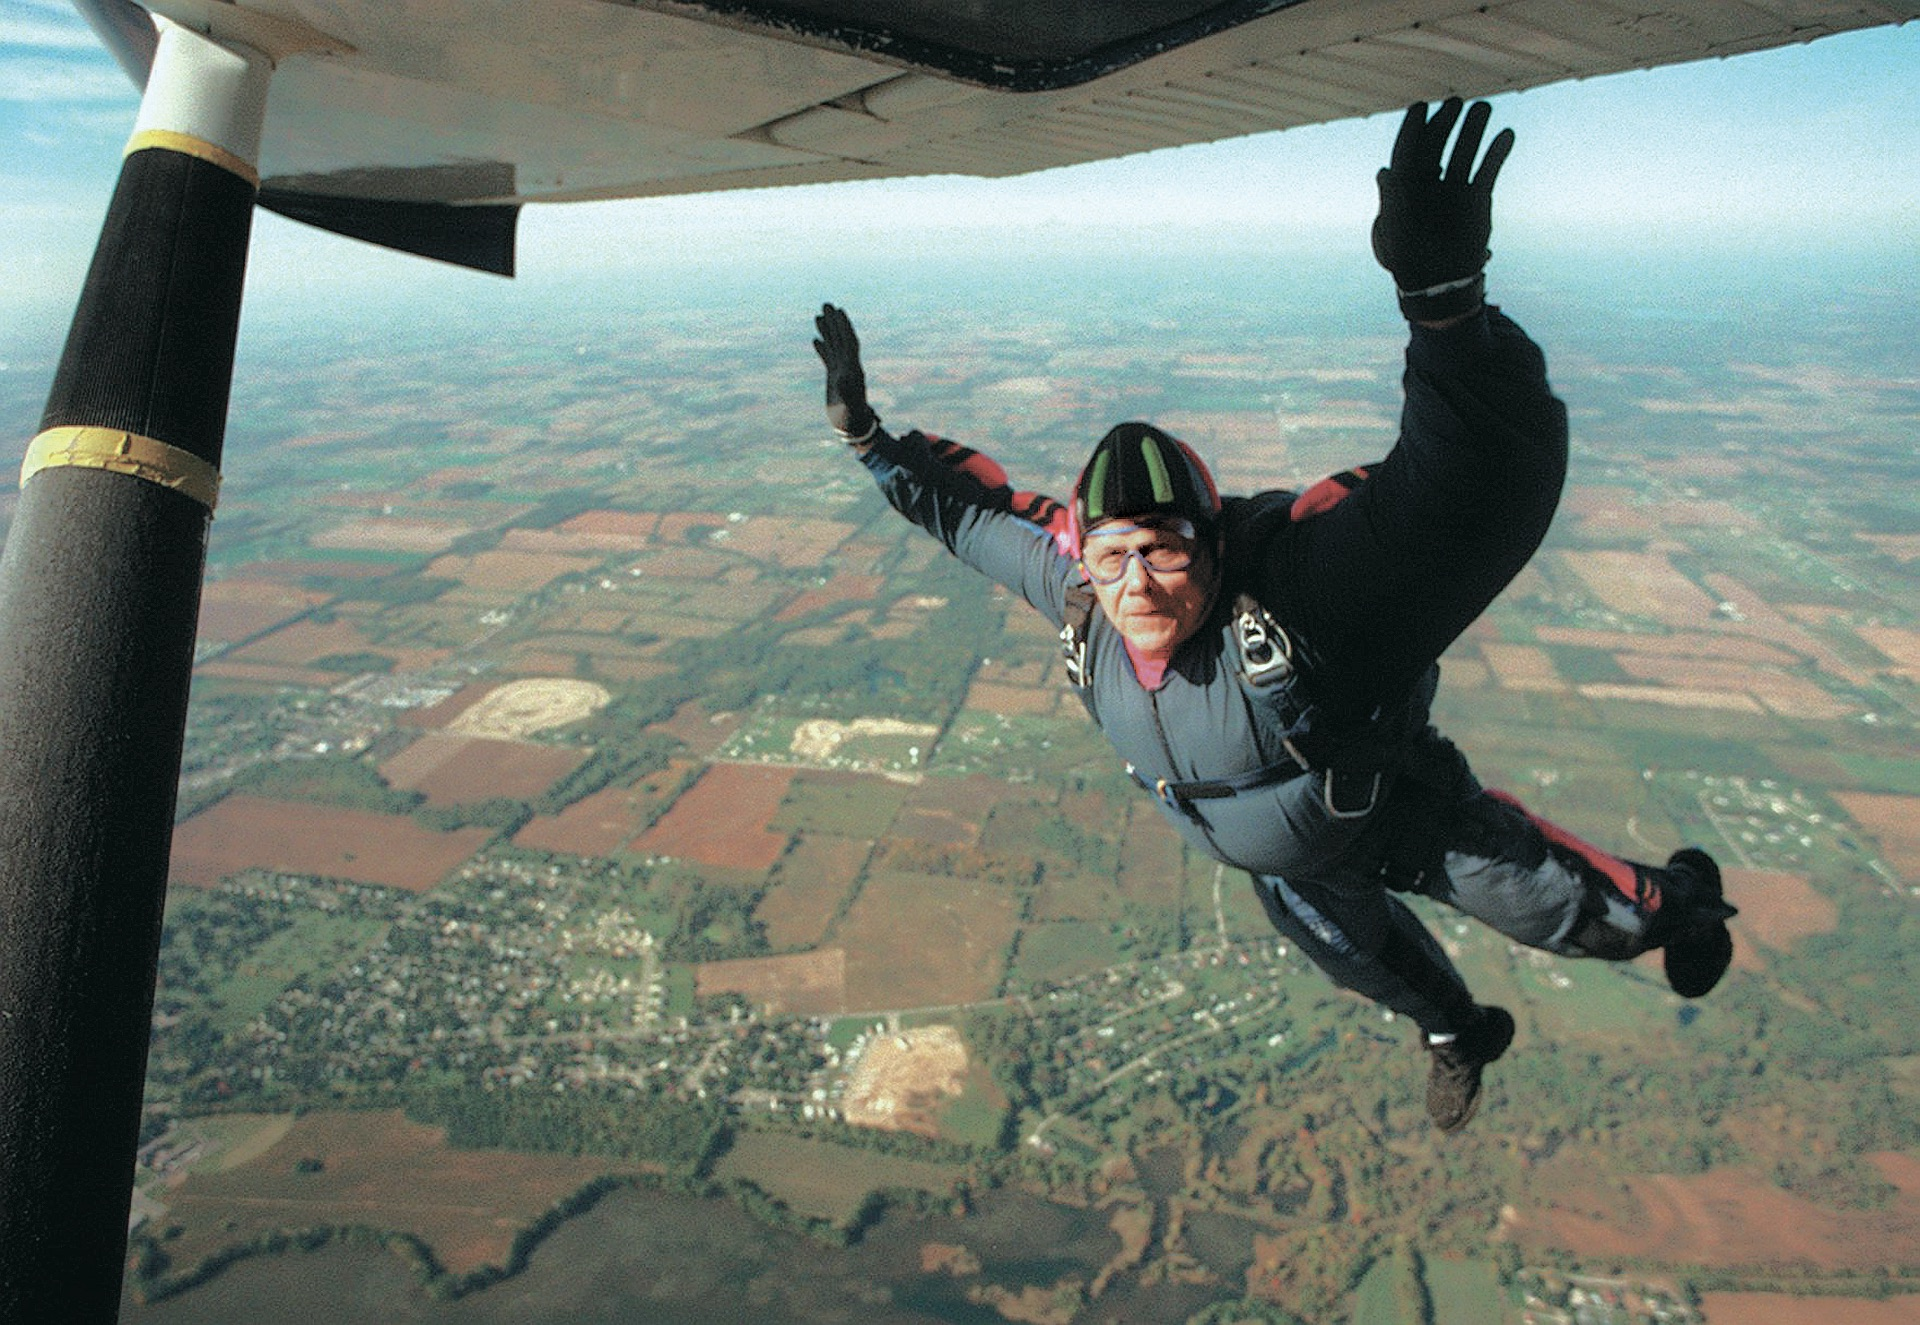 Brownlee skydiving over Tecumseh, October 1996 image